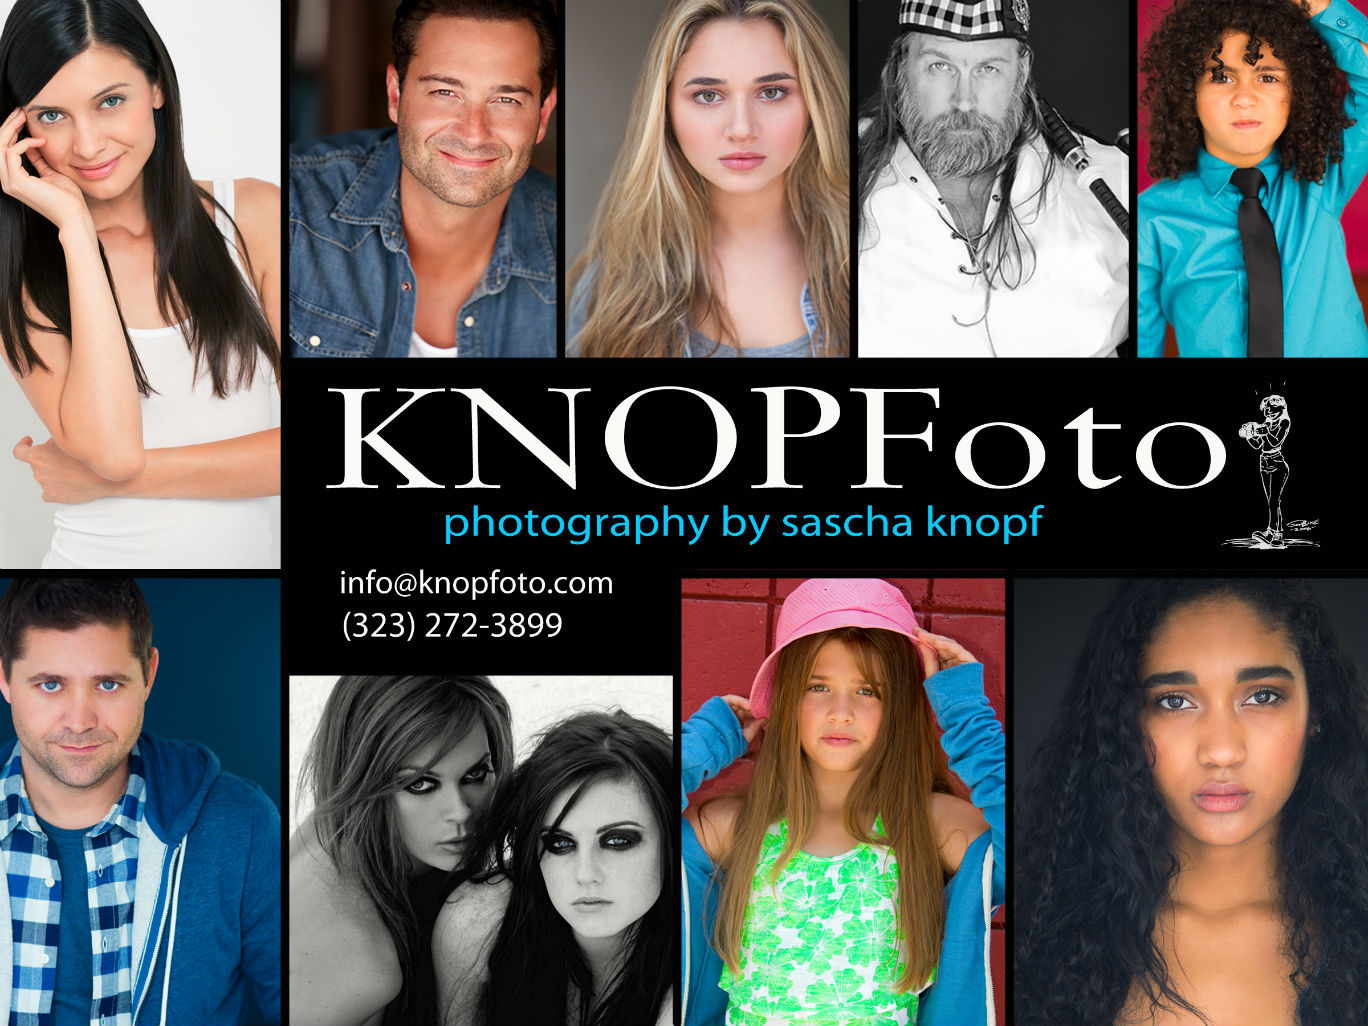 knopfoto photography by sascha knopf comp card